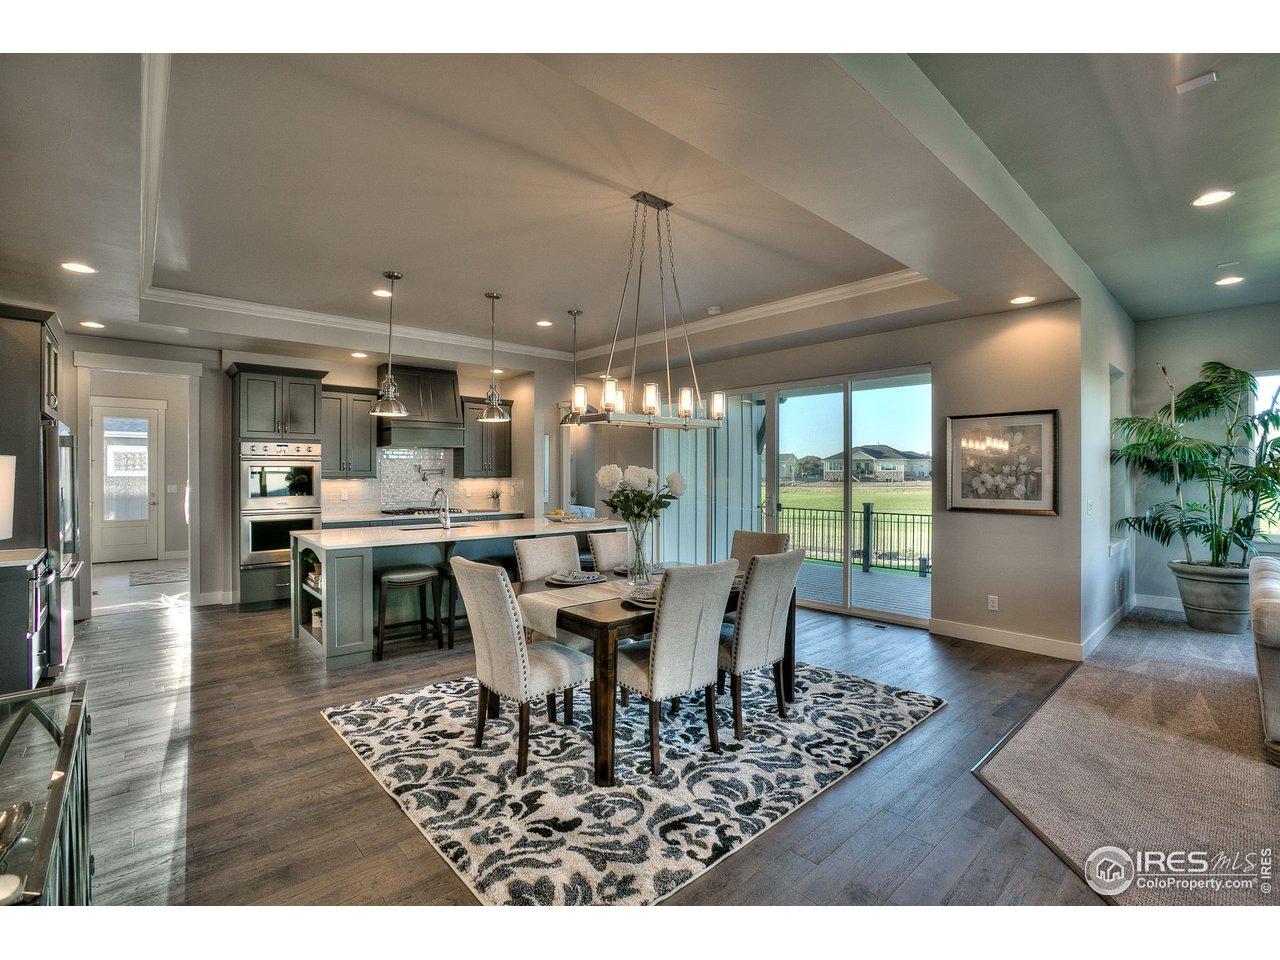 Gourmet kitchen&designer finishes (to be selected)